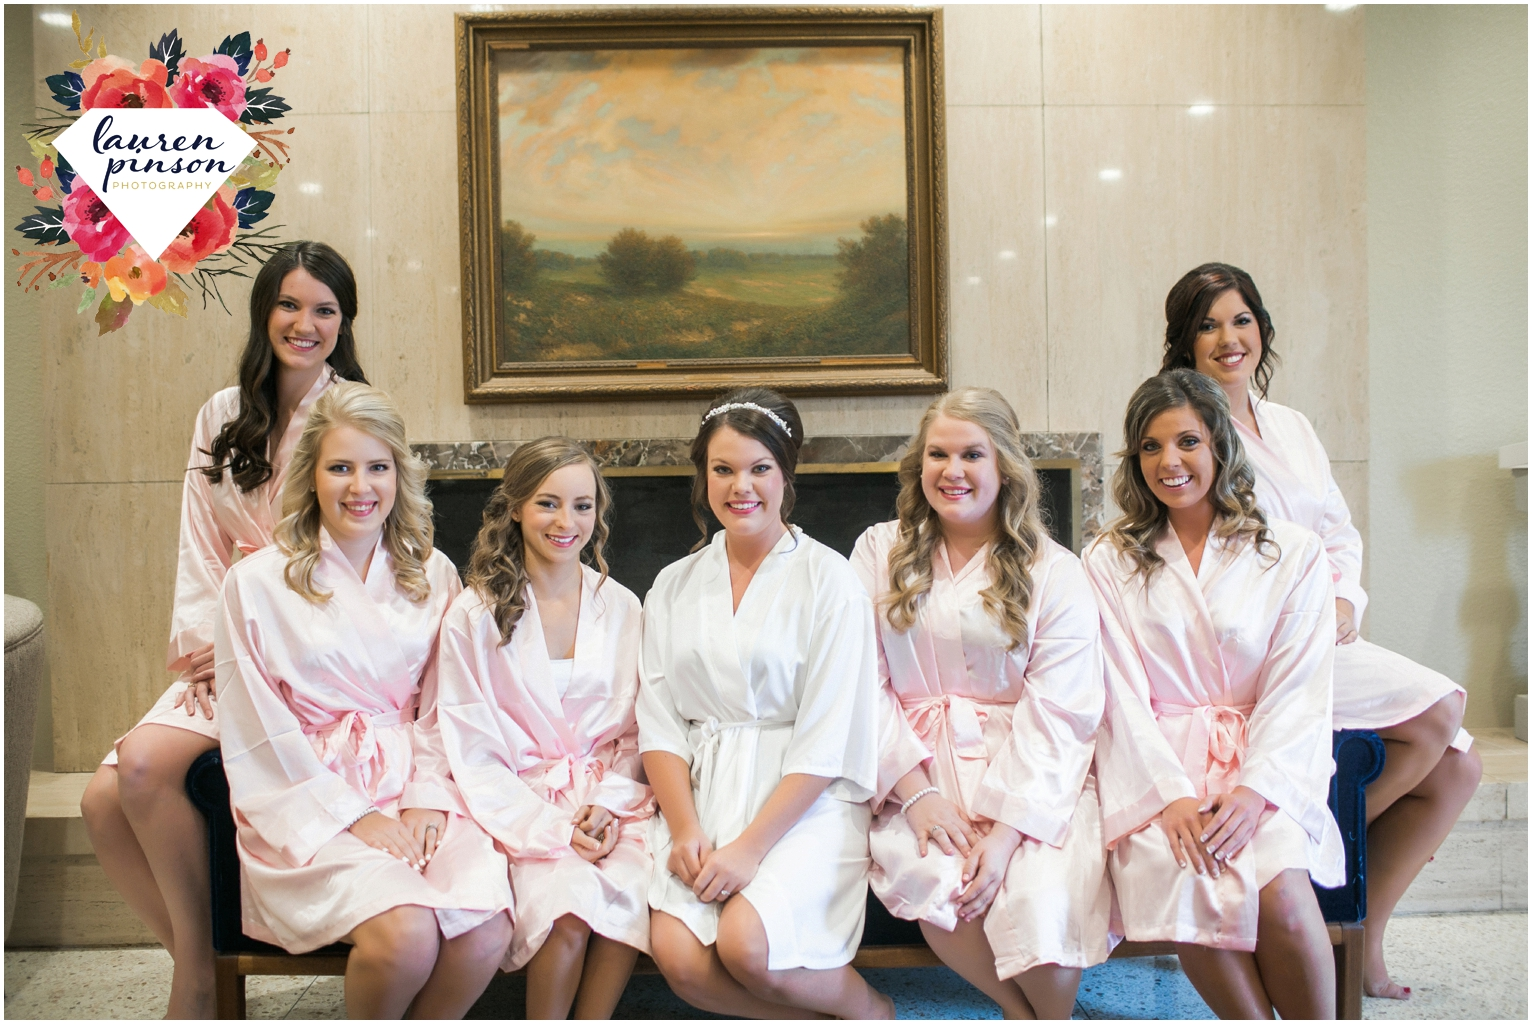 wichita-falls-wedding-photographer-kemp-center-at-the-forum-photography-two-clever-chicks_0993.jpg